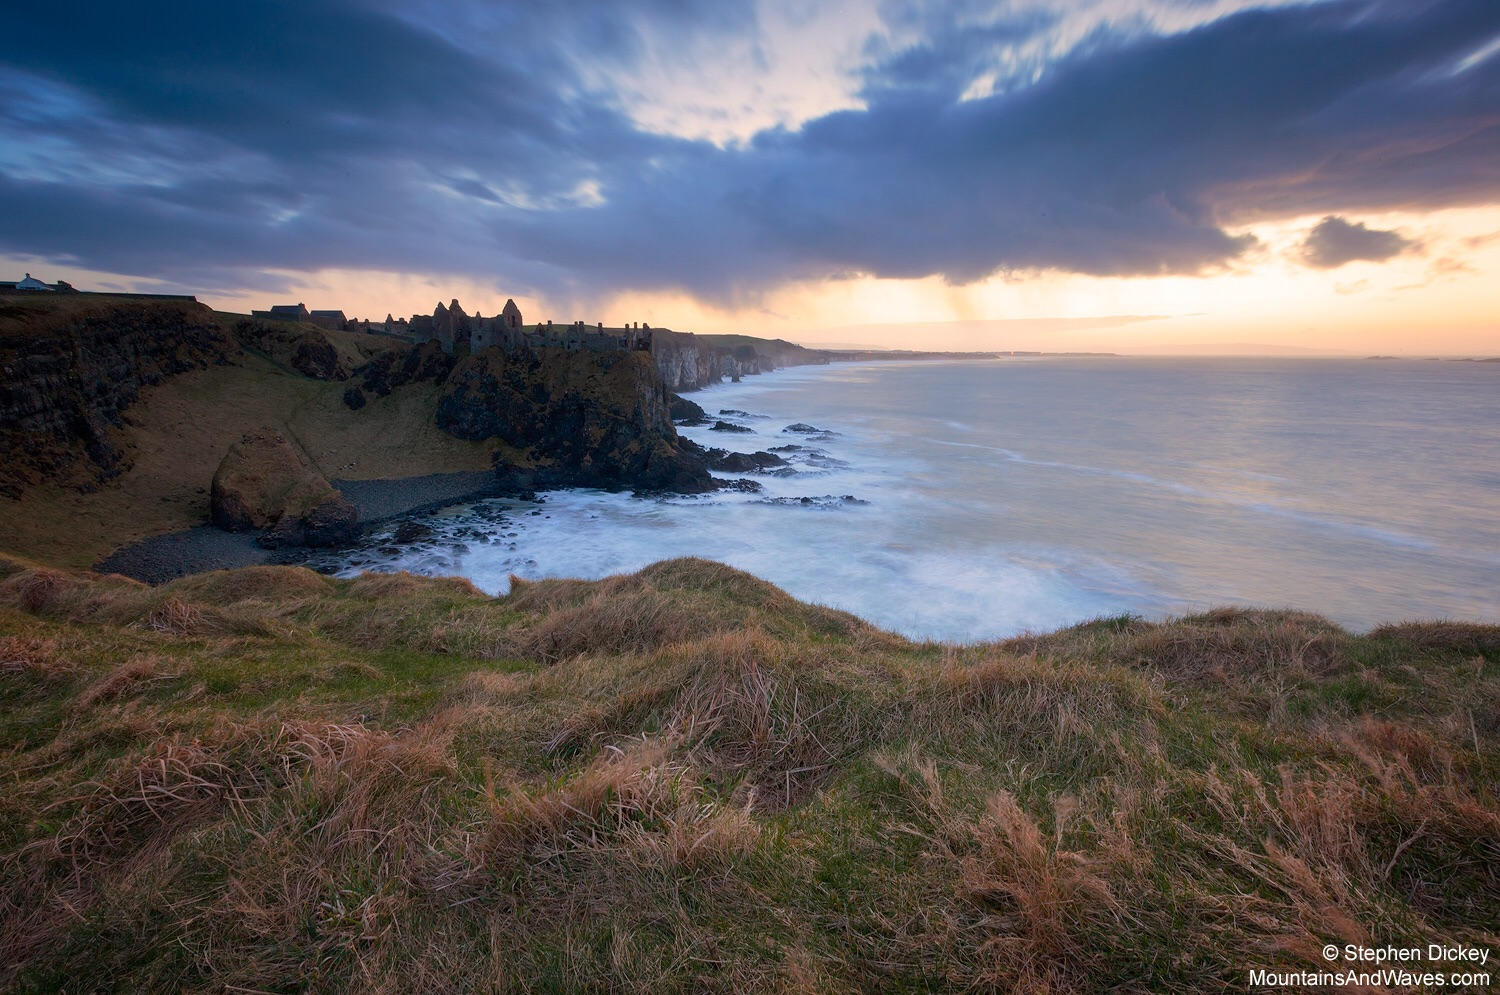 Dunluce Castle, County Antrim - Northern Ireland Landscape Photography by Stephen Dickey